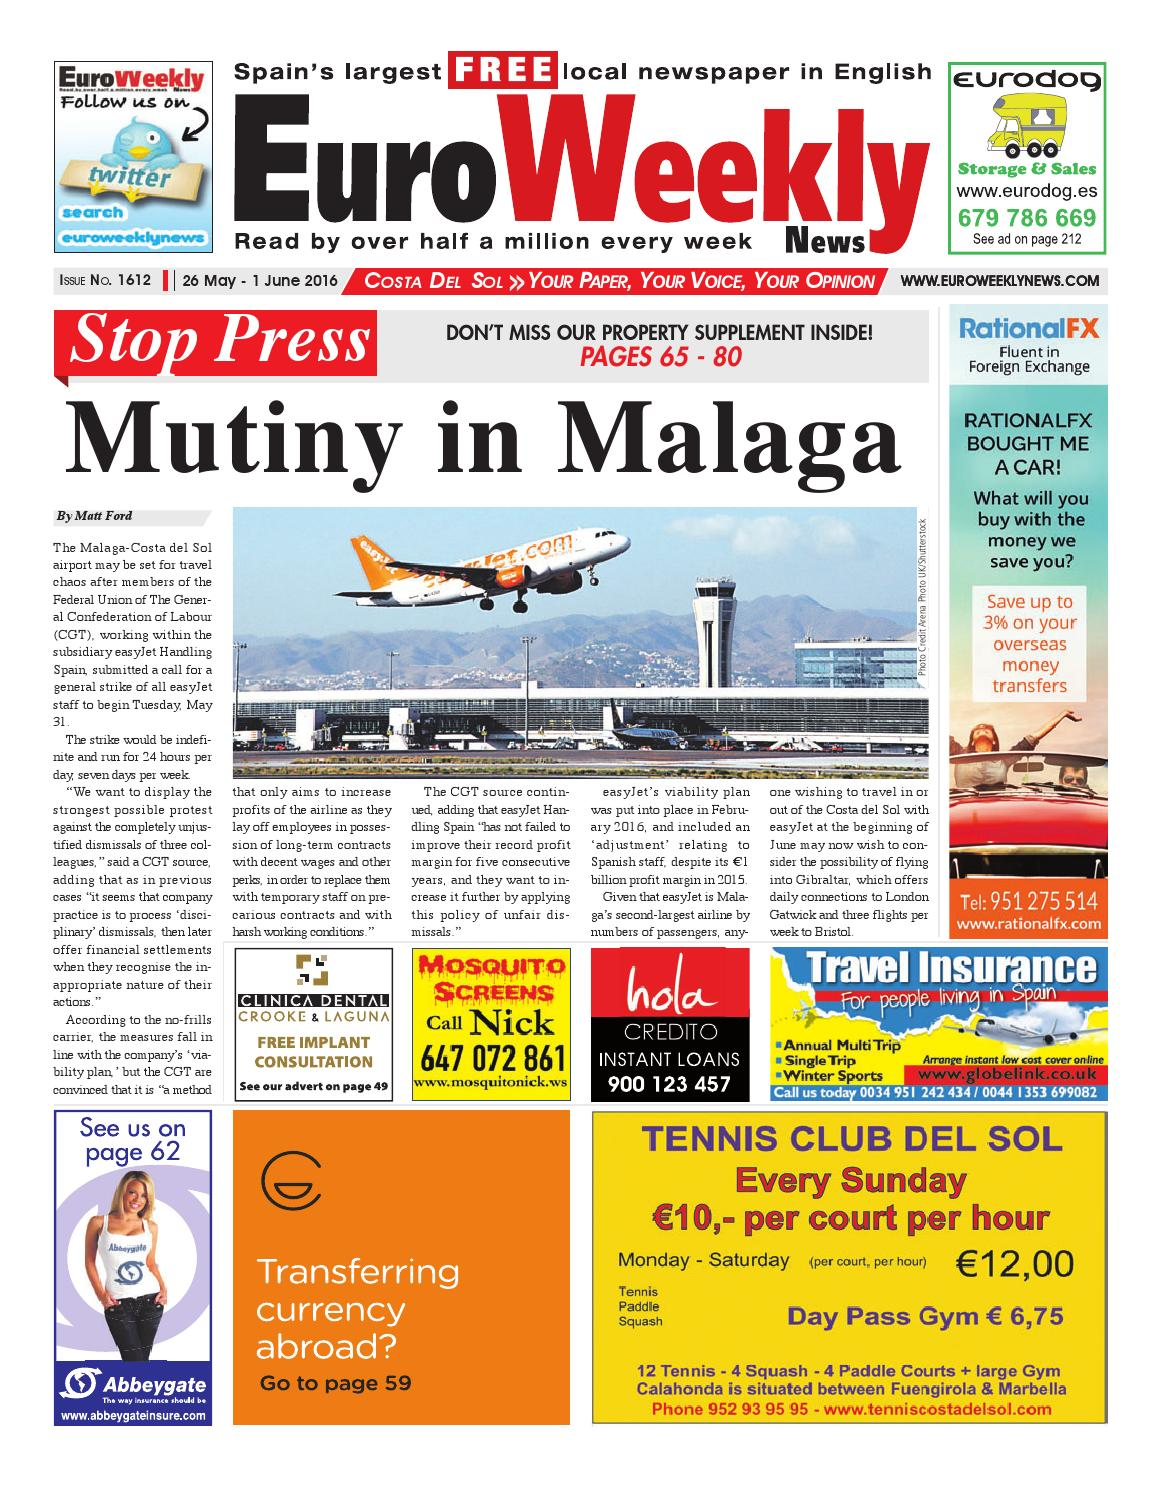 Euro weekly news costa del sol 26 may 1 june 2016 issue 1612 by euro weekly news costa del sol 26 may 1 june 2016 issue 1612 by euro weekly news media sa issuu fandeluxe Images